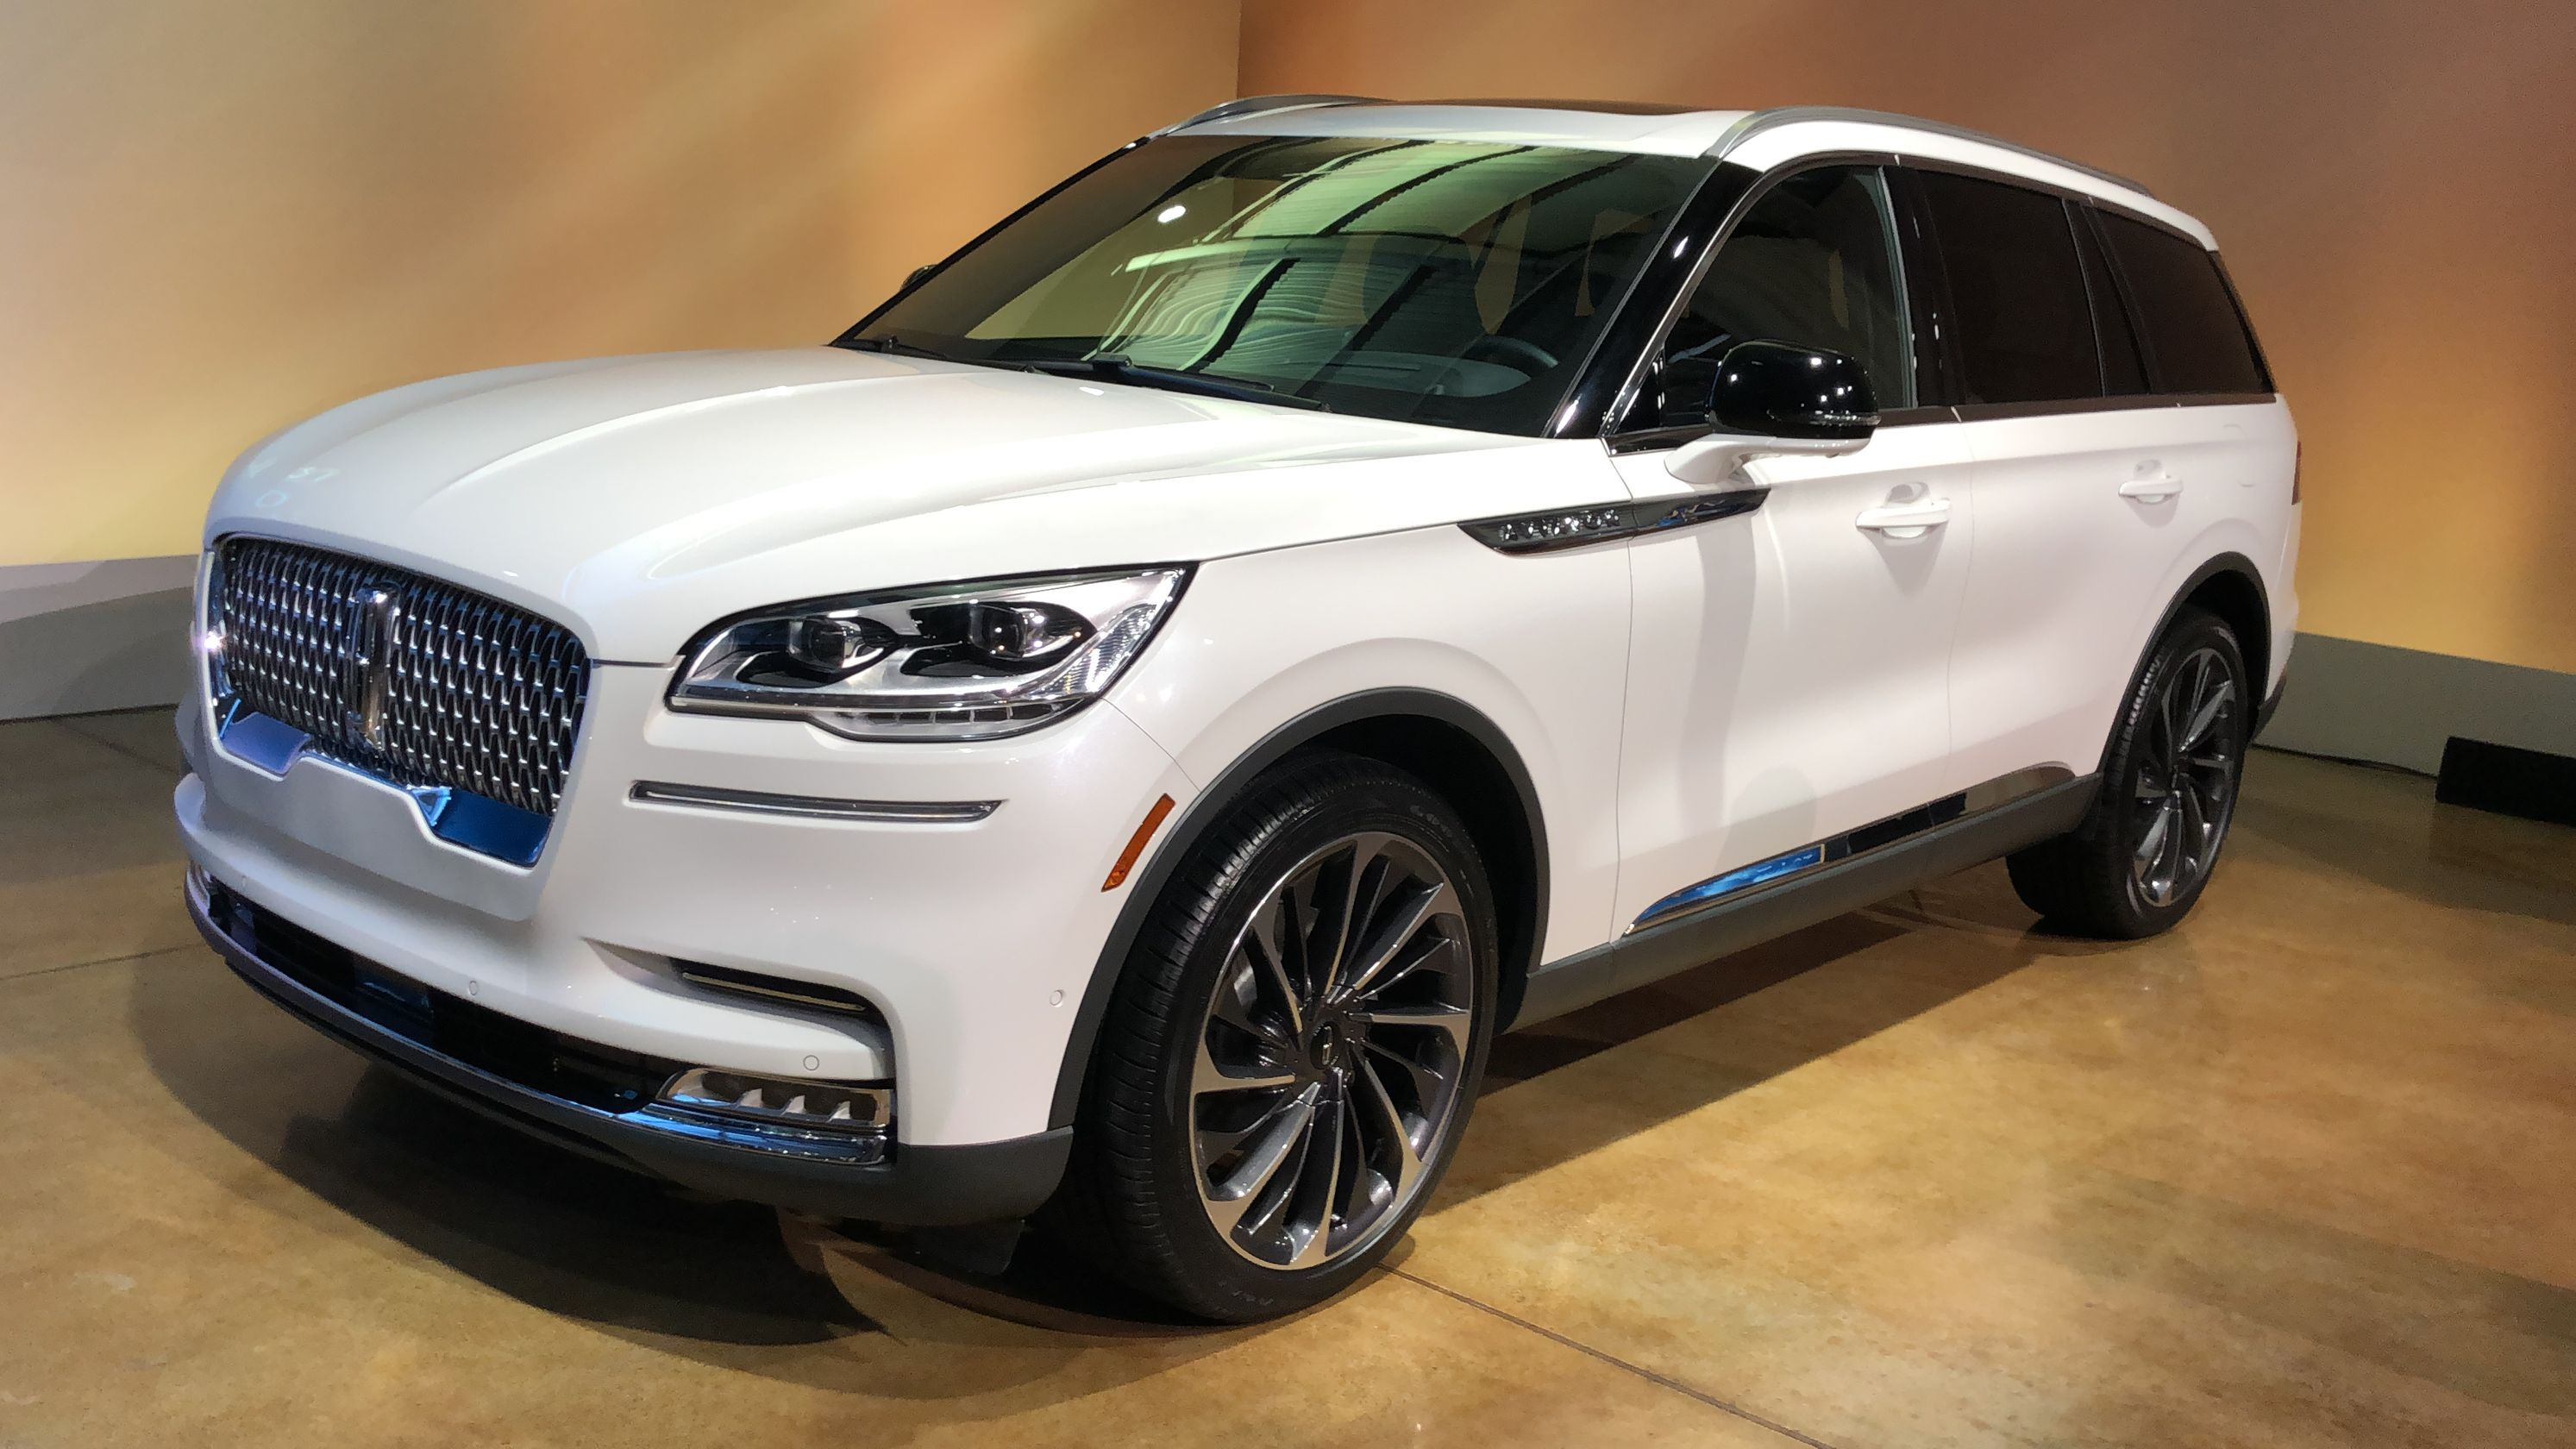 2020 Lincoln Aviator 10 Things Customers Will Like About All New Suv Lincoln Aviator New Suv Lincoln Cars